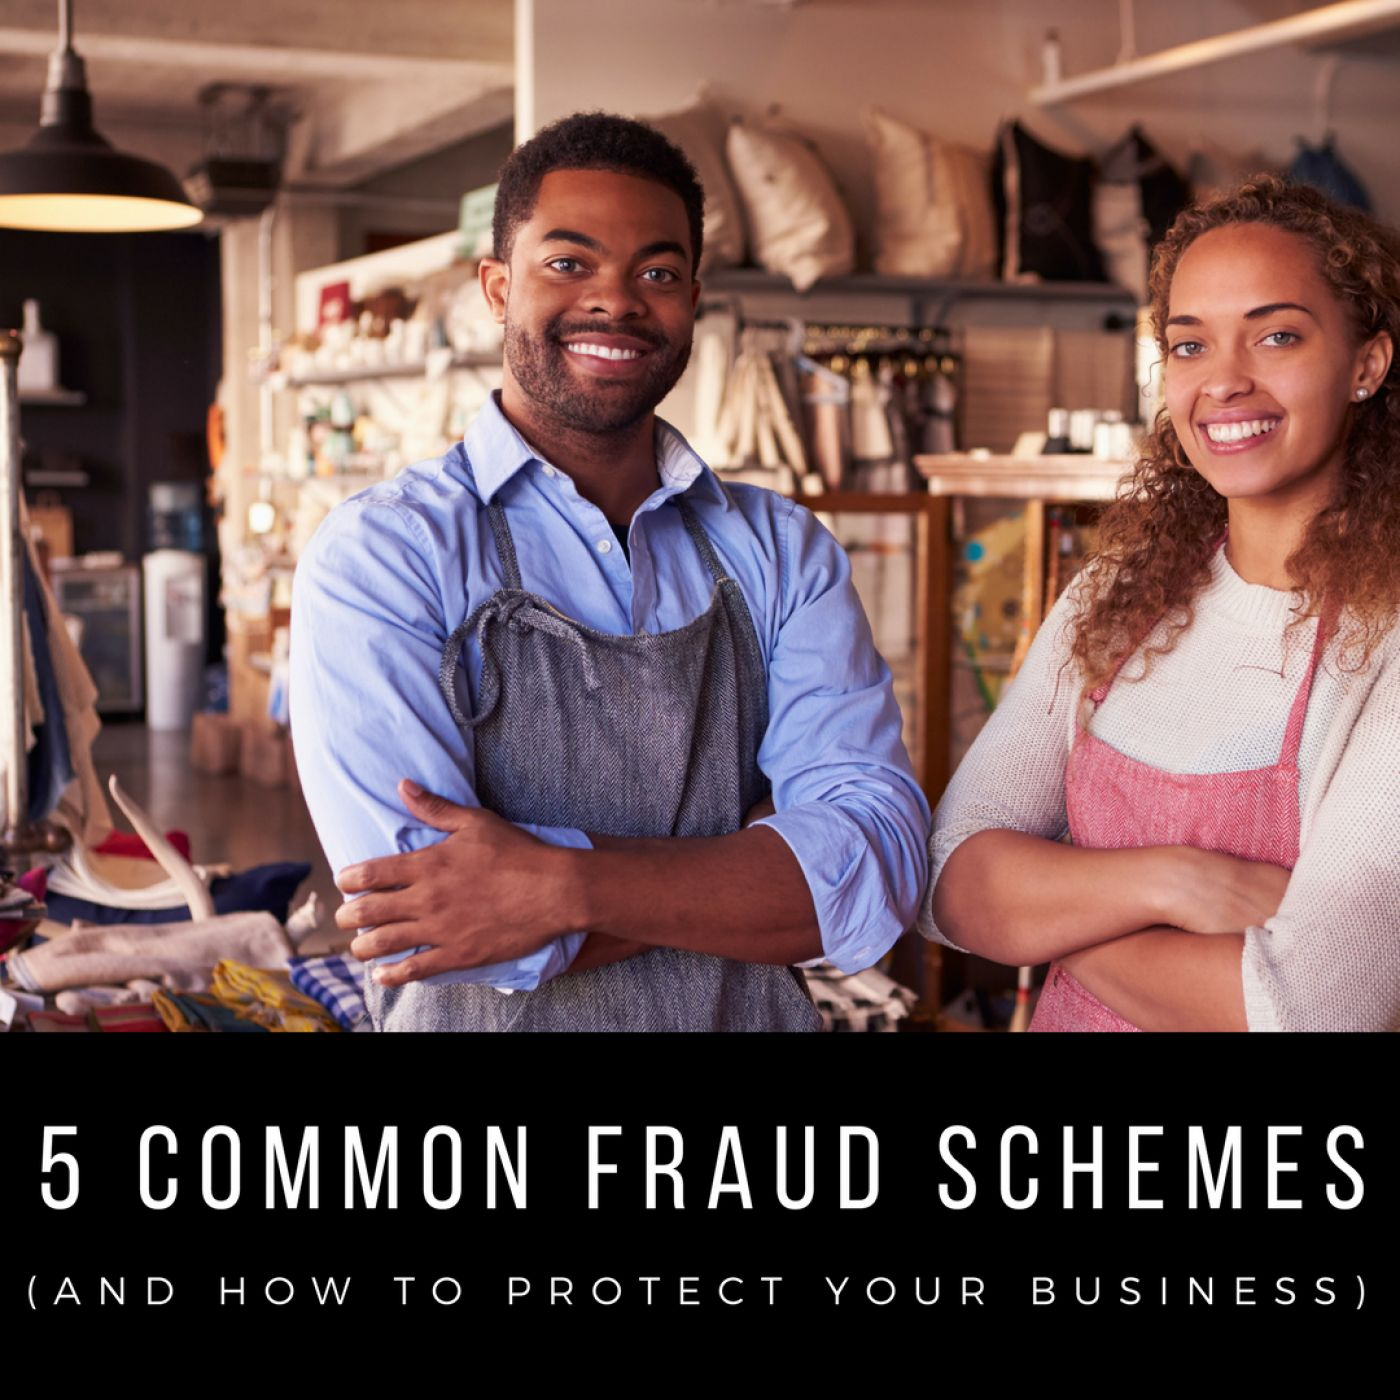 Protect Your Small Business From These 5 Common Fraud Schemes